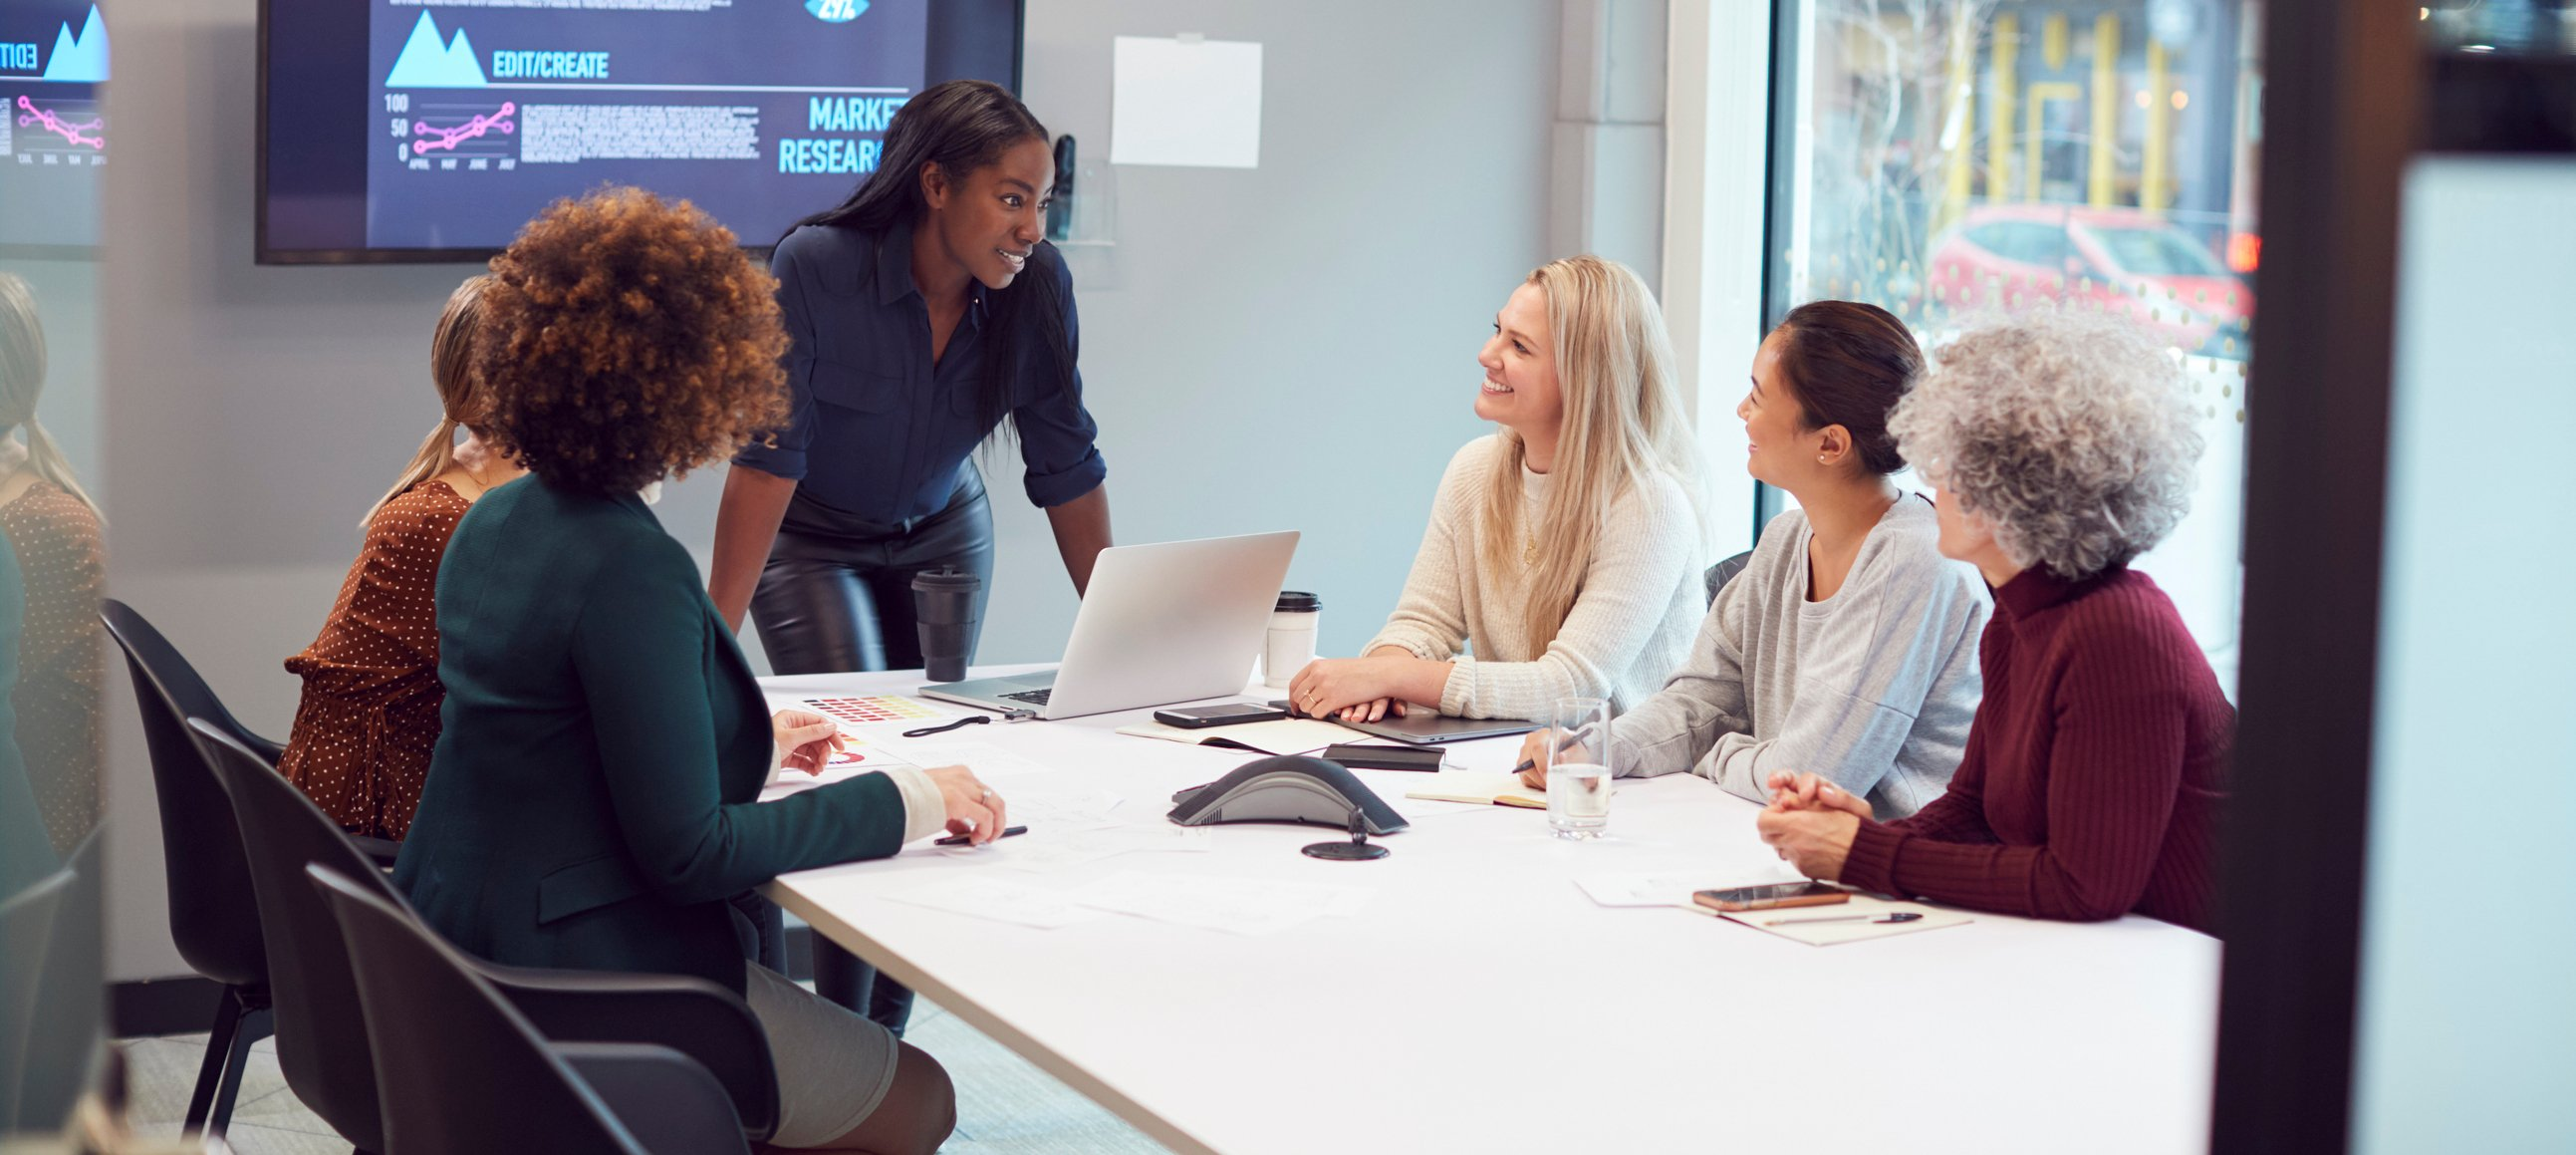 How to Demonstrate Leadership in a New Role